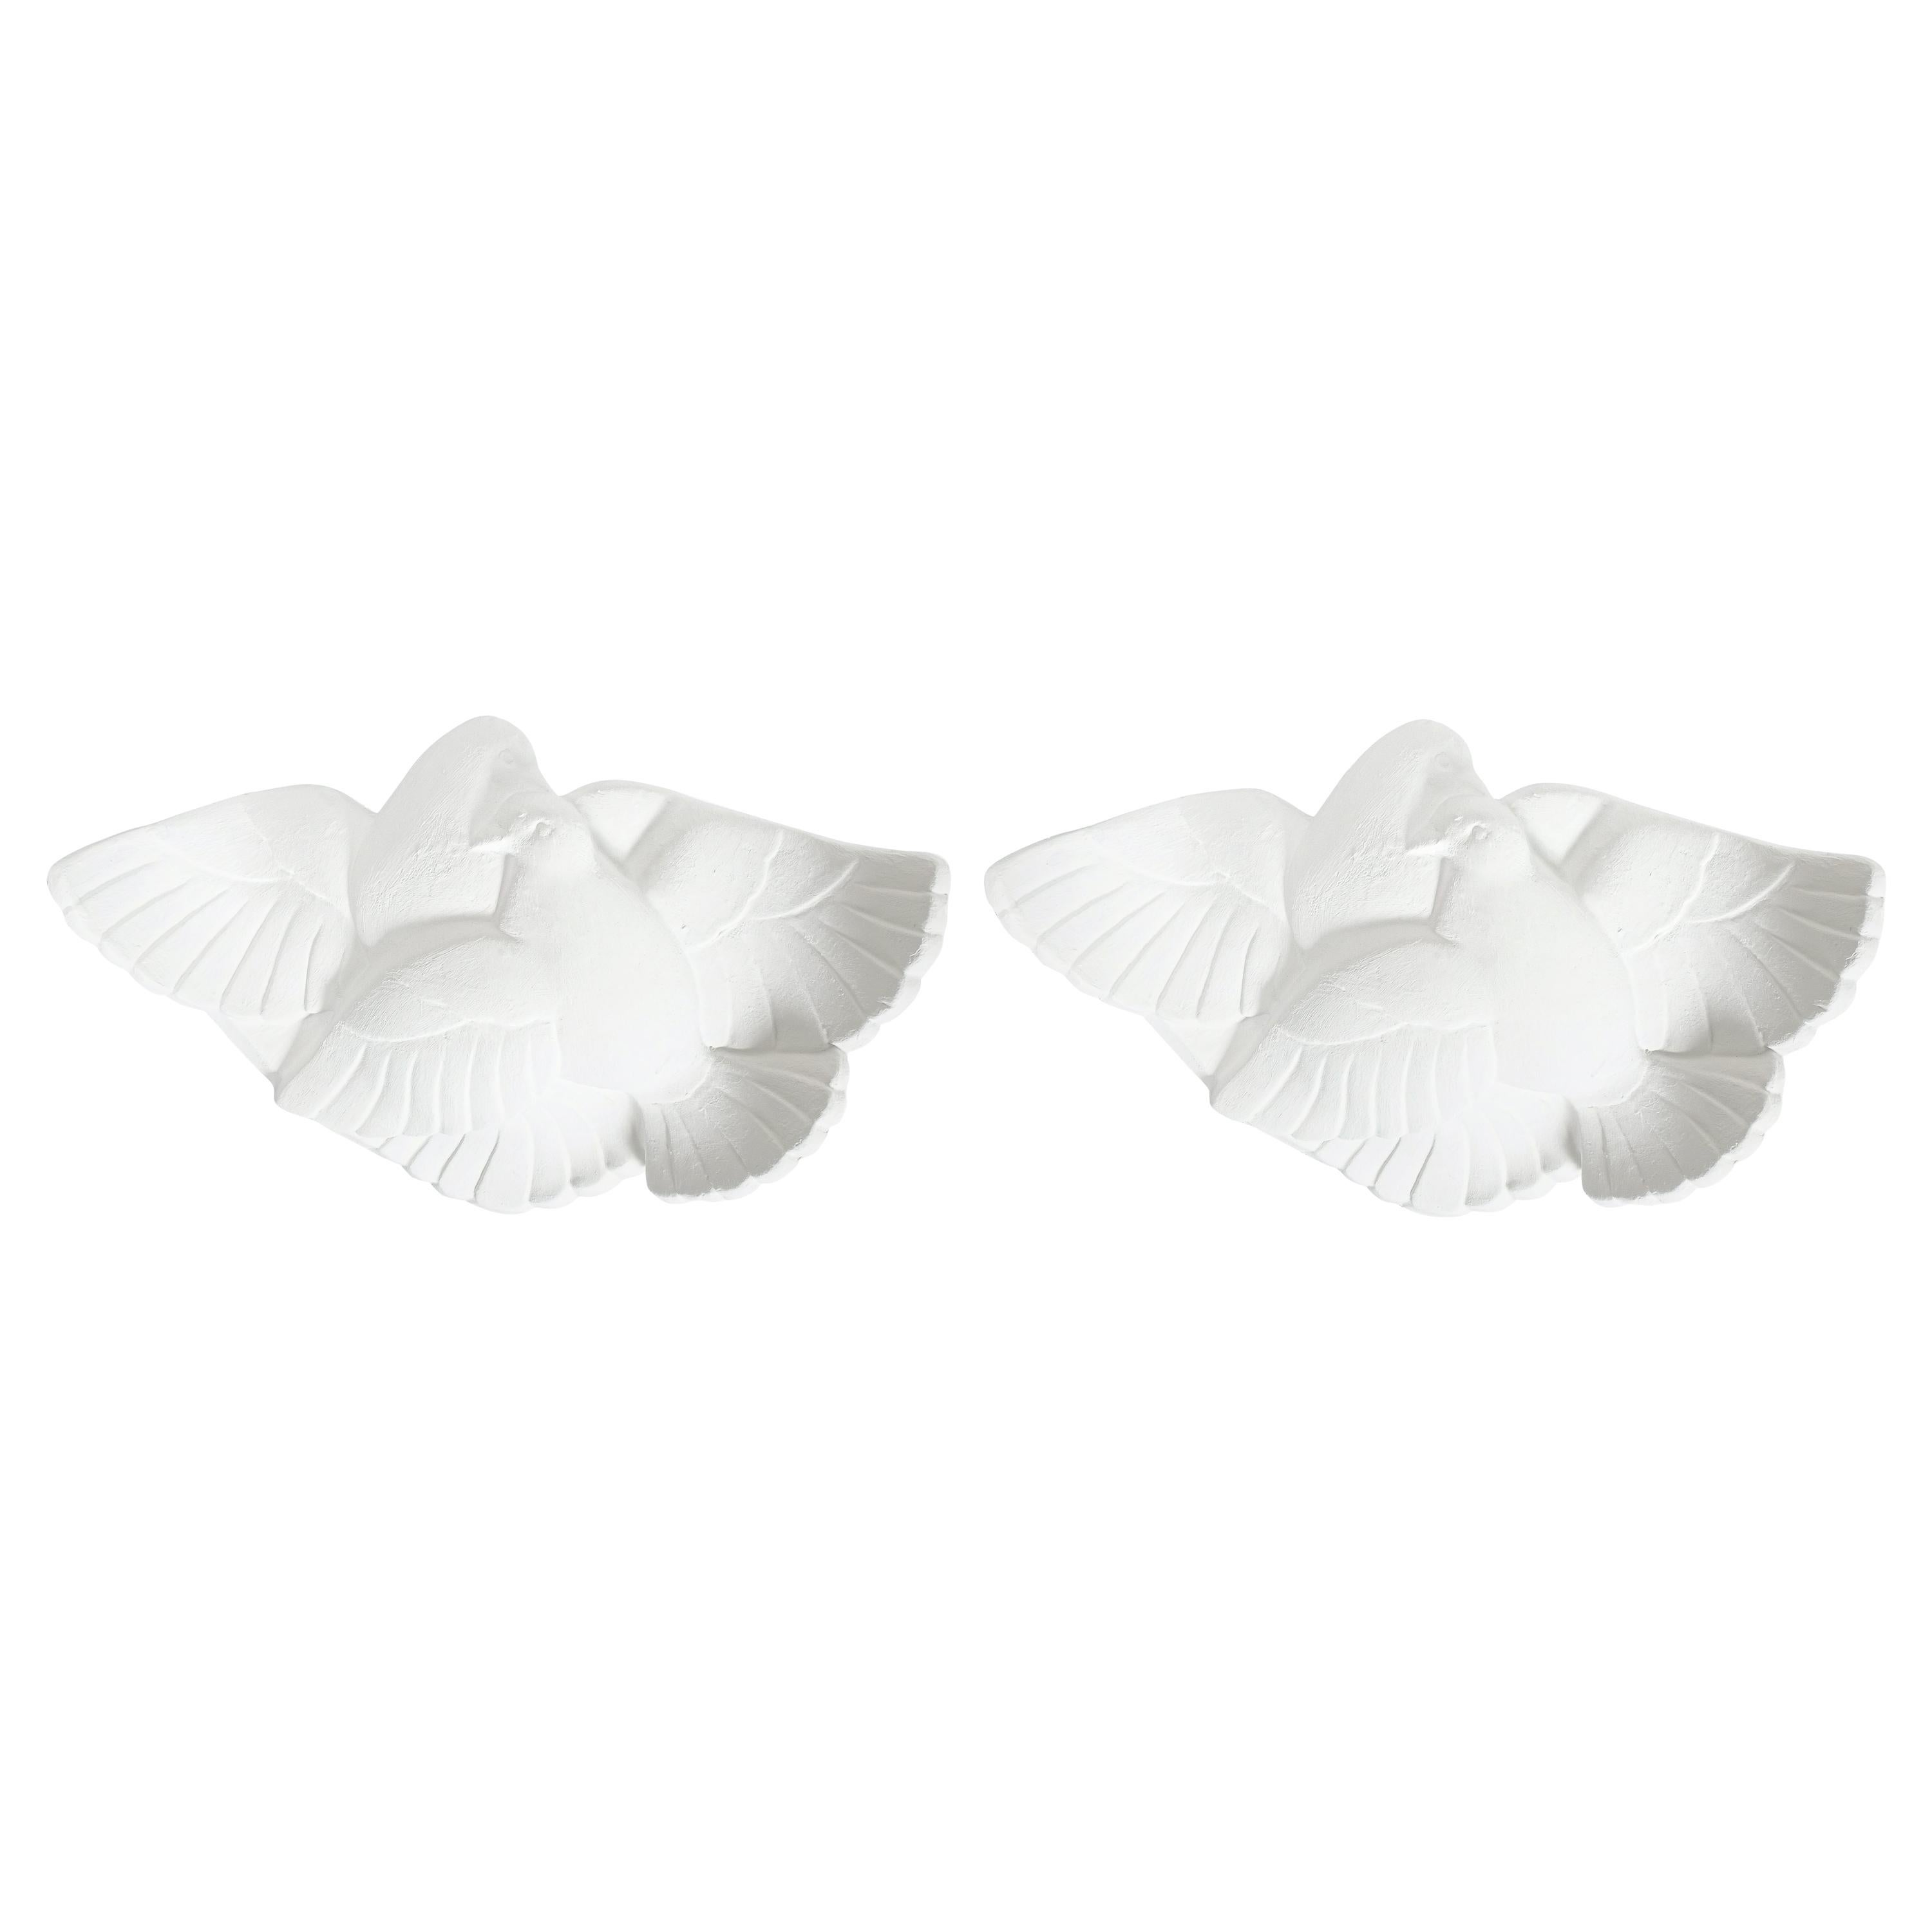 Pair of Art Deco White Plaster Sconces Wall Lamps Attr. Adnet, France circa 1935